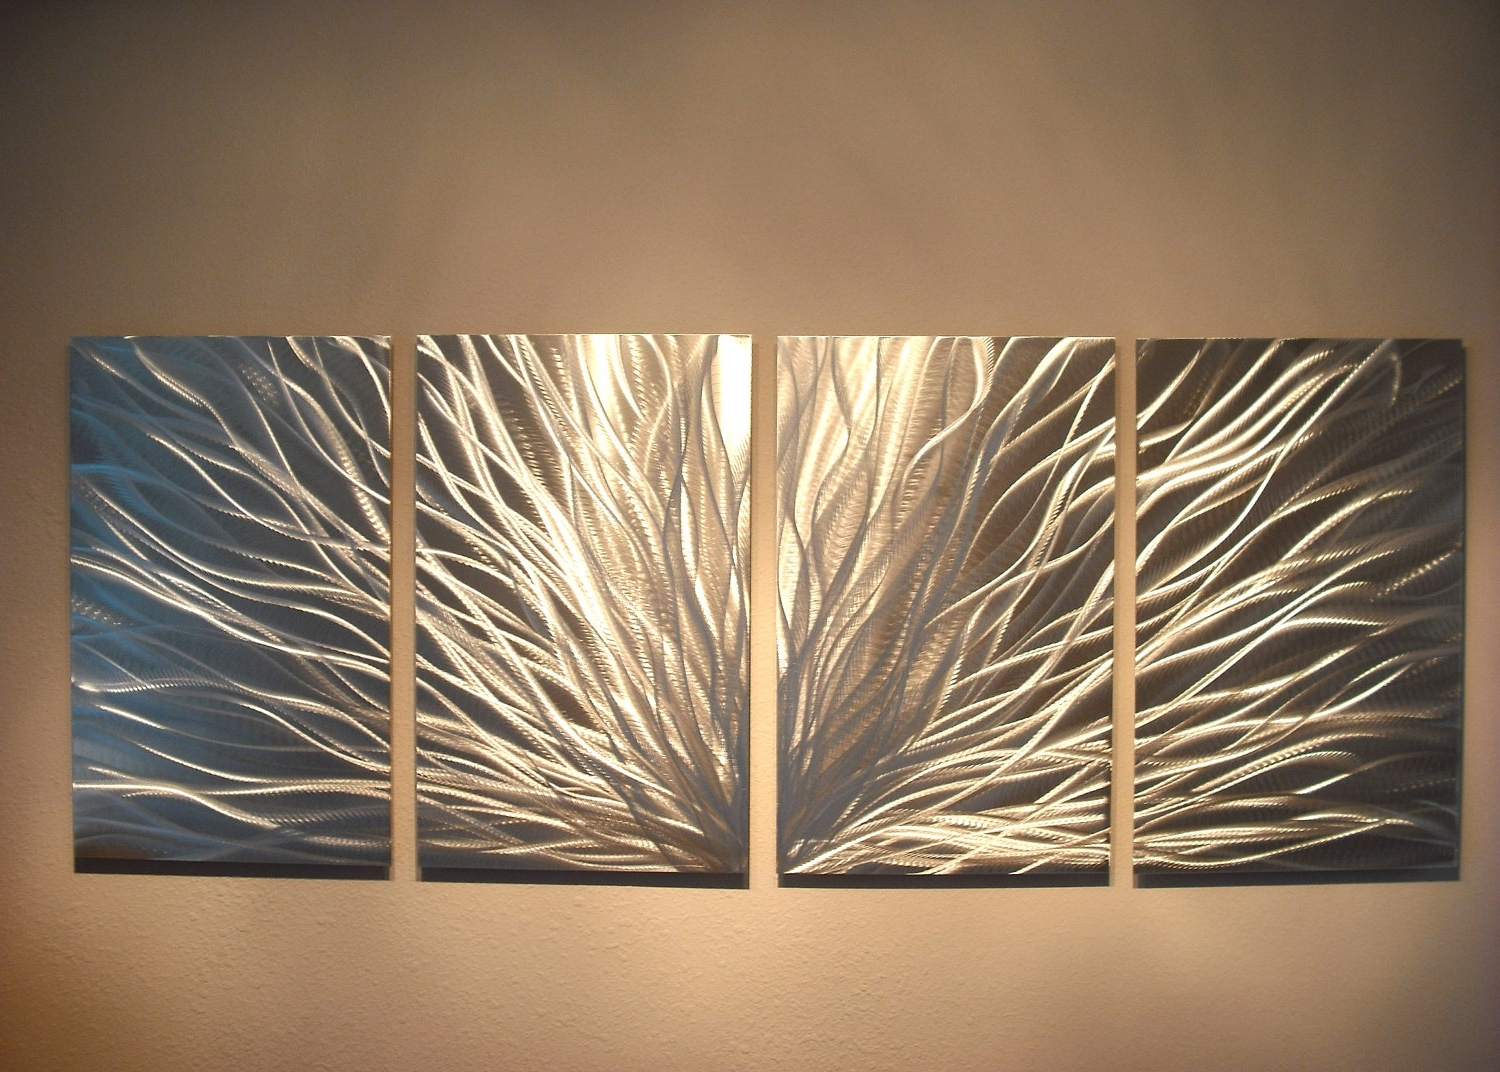 Trendy Contemporary Metal Wall Art Sculpture With Regard To Radiance – Abstract Metal Wall Art Contemporary Modern Decor (View 11 of 15)